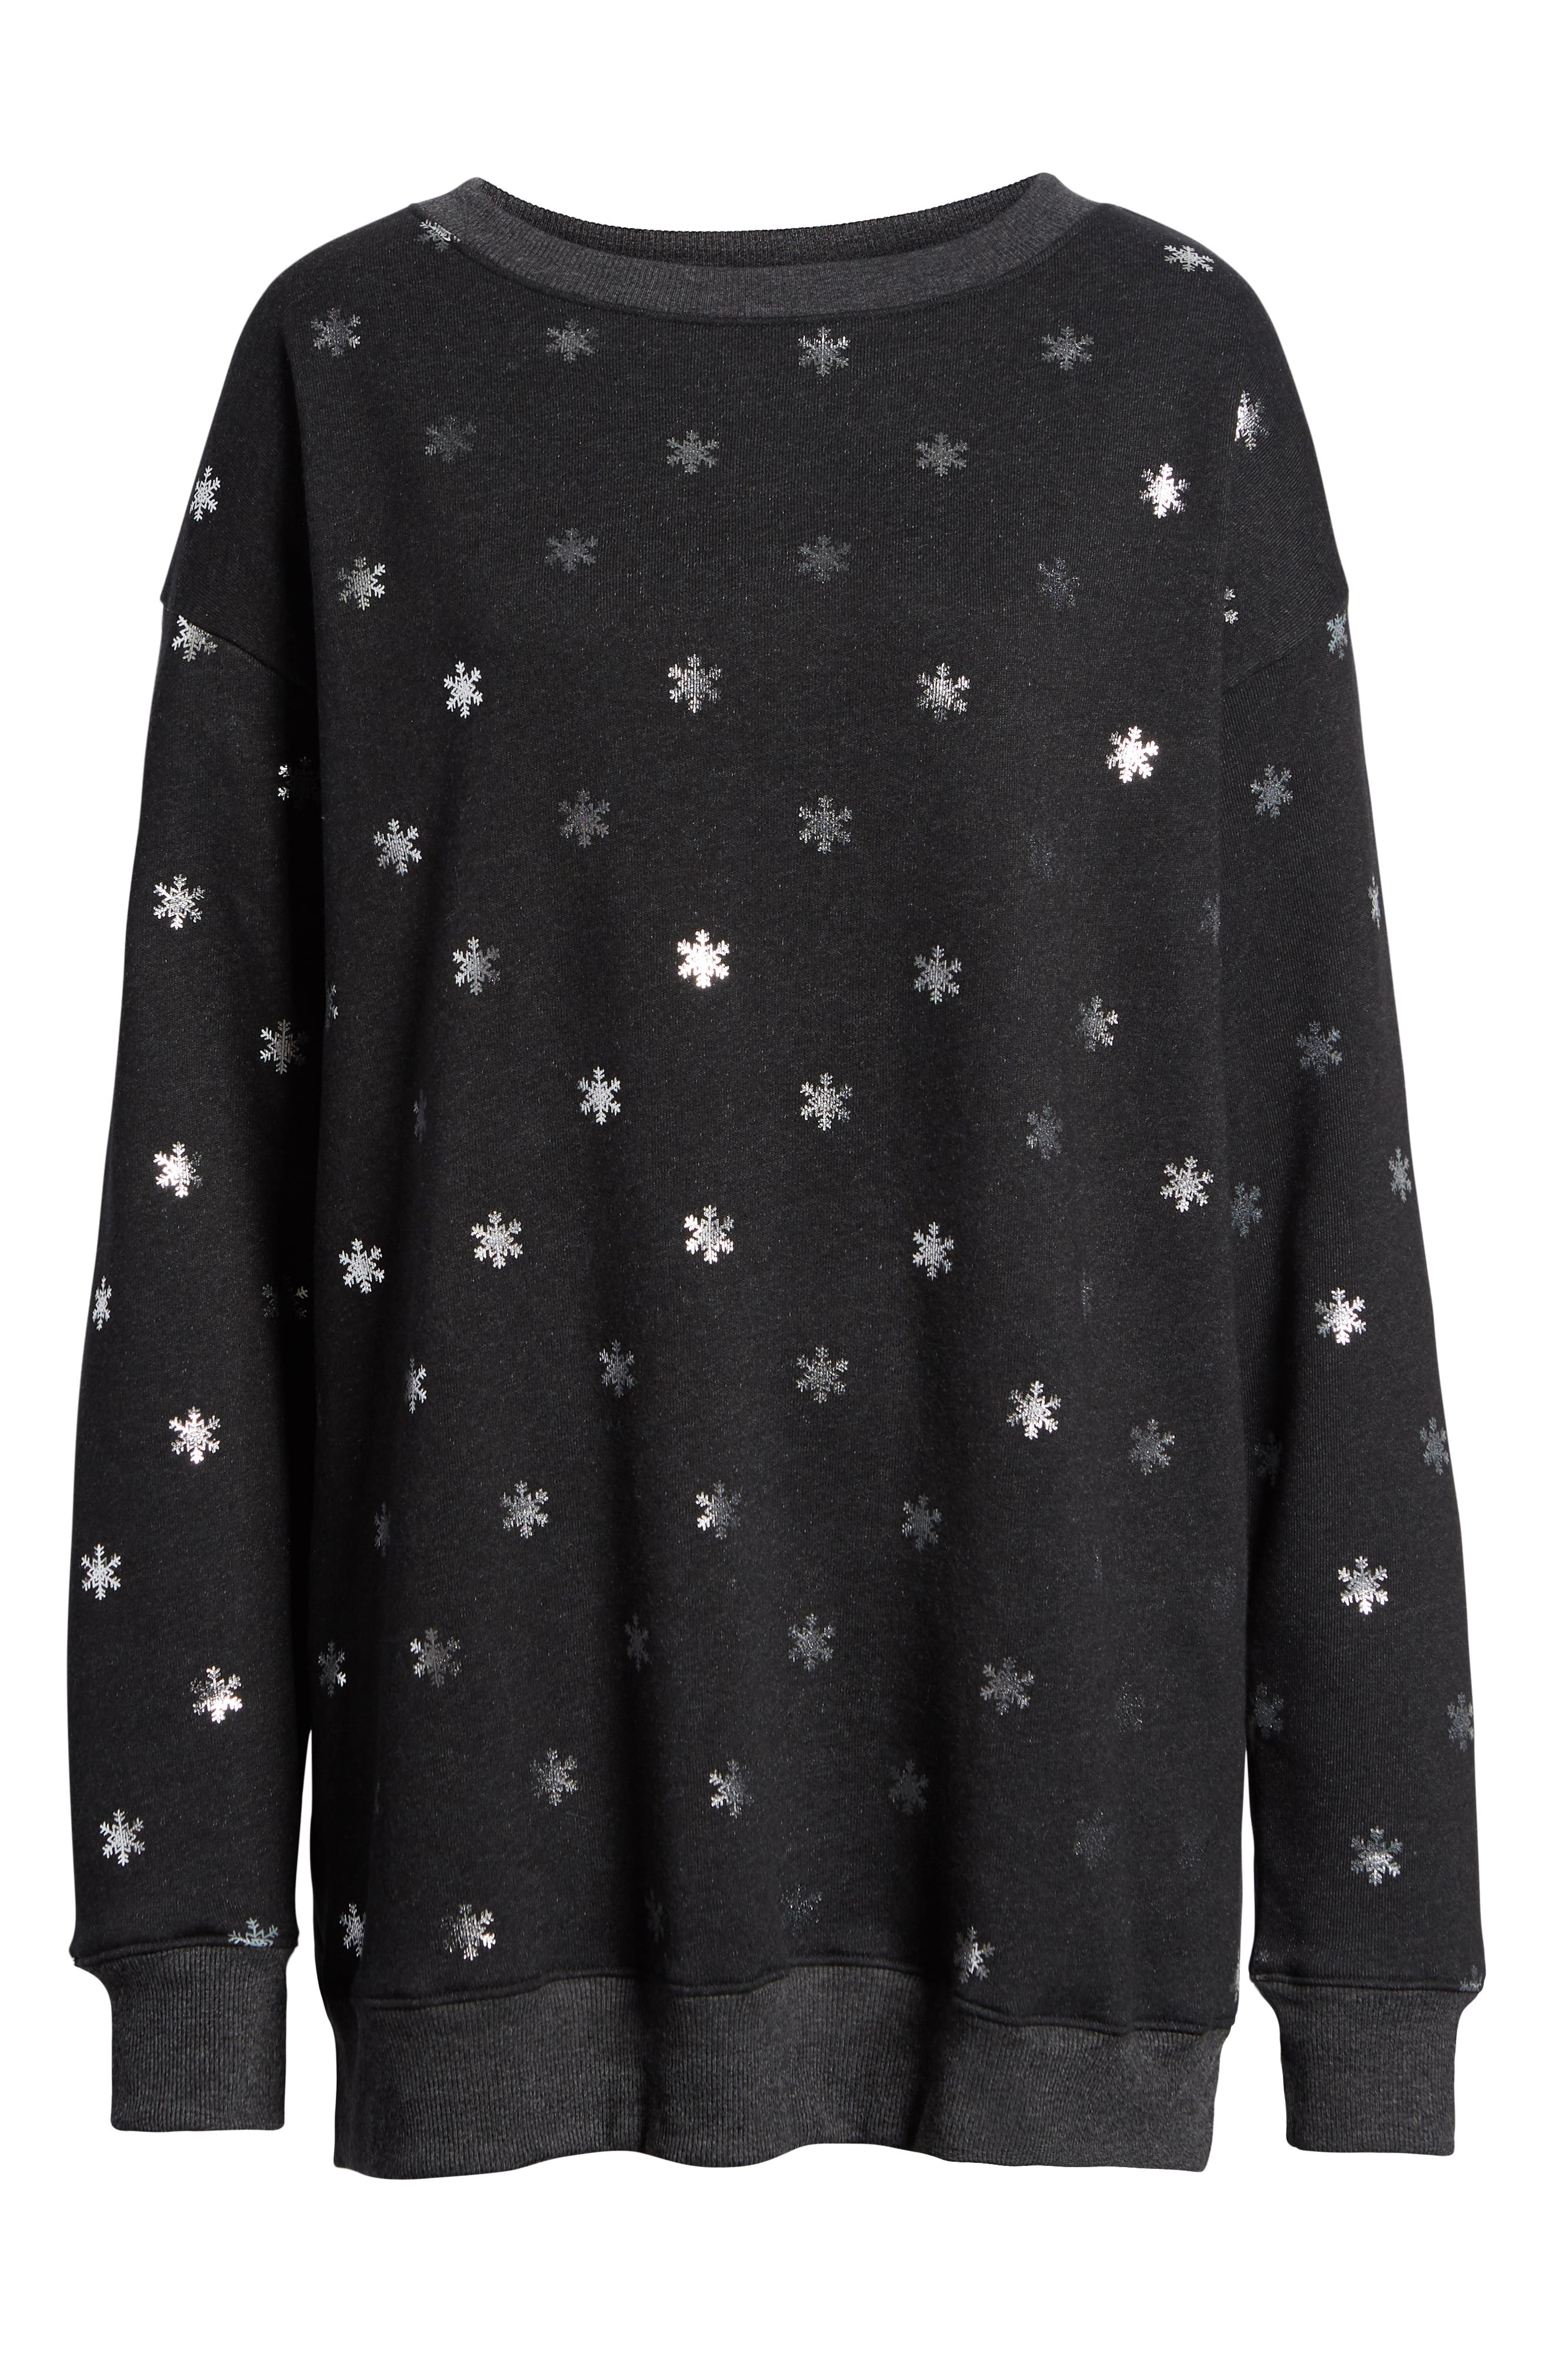 WILDFOX,                             Shimmery Snowflakes Road Trip Pullover,                             Alternate thumbnail 6, color,                             002